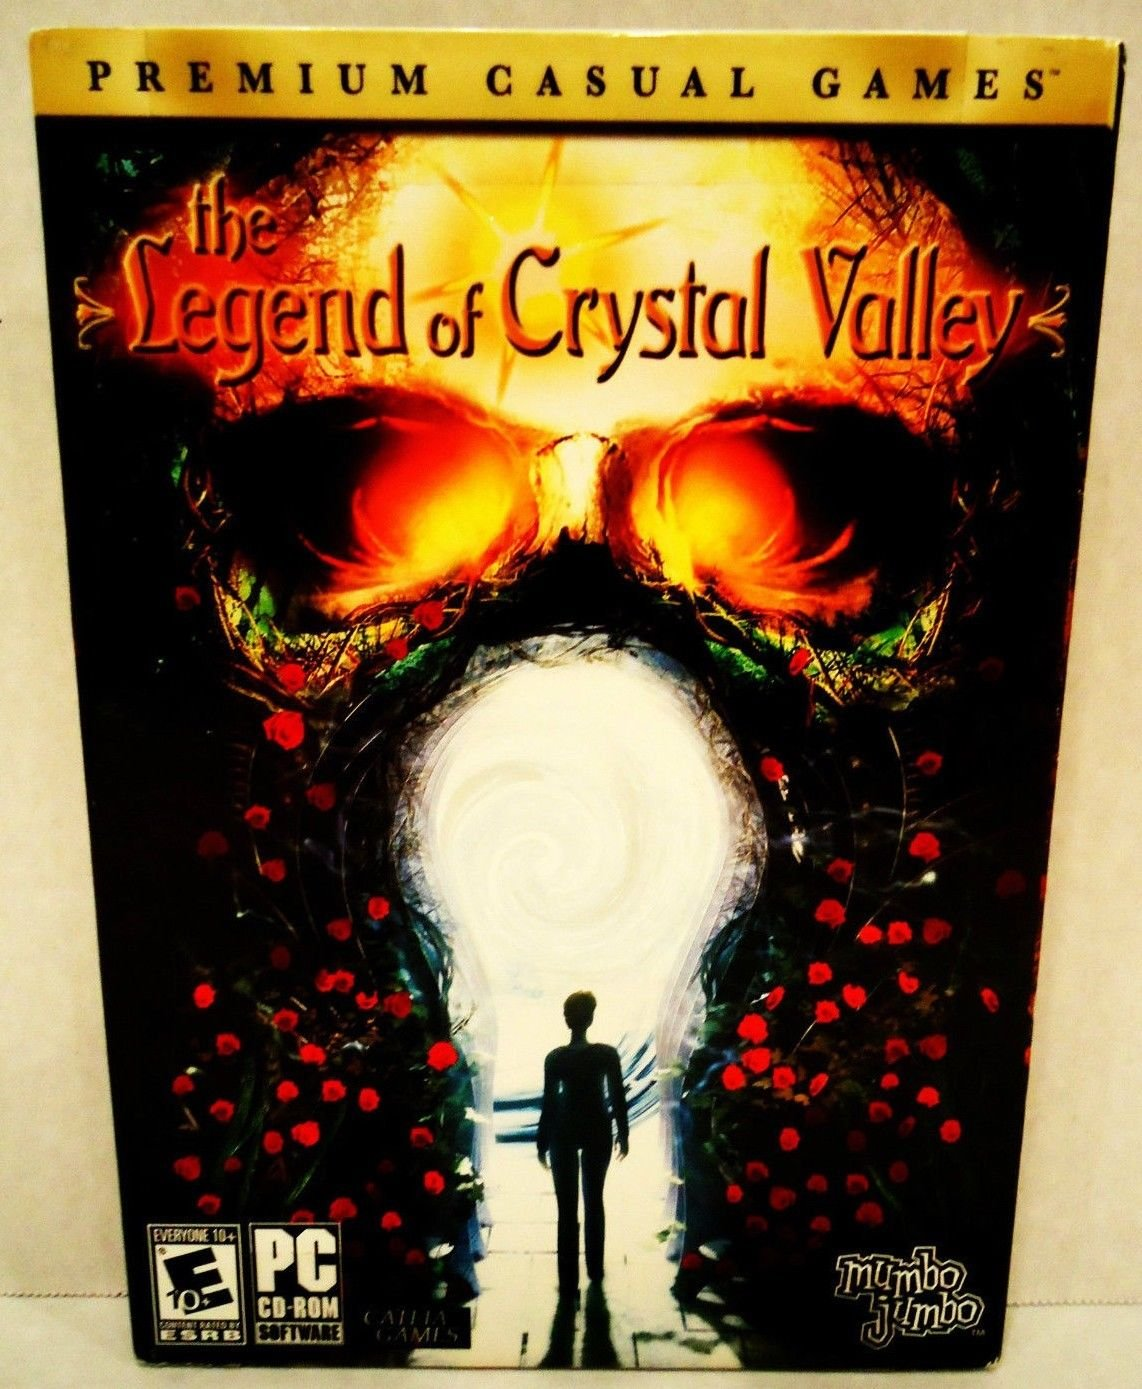 THE LEGEND OF CRYSTAL VALLEY - PC - COMPUTER - VIDEO - GAMES - NEW - SEALED